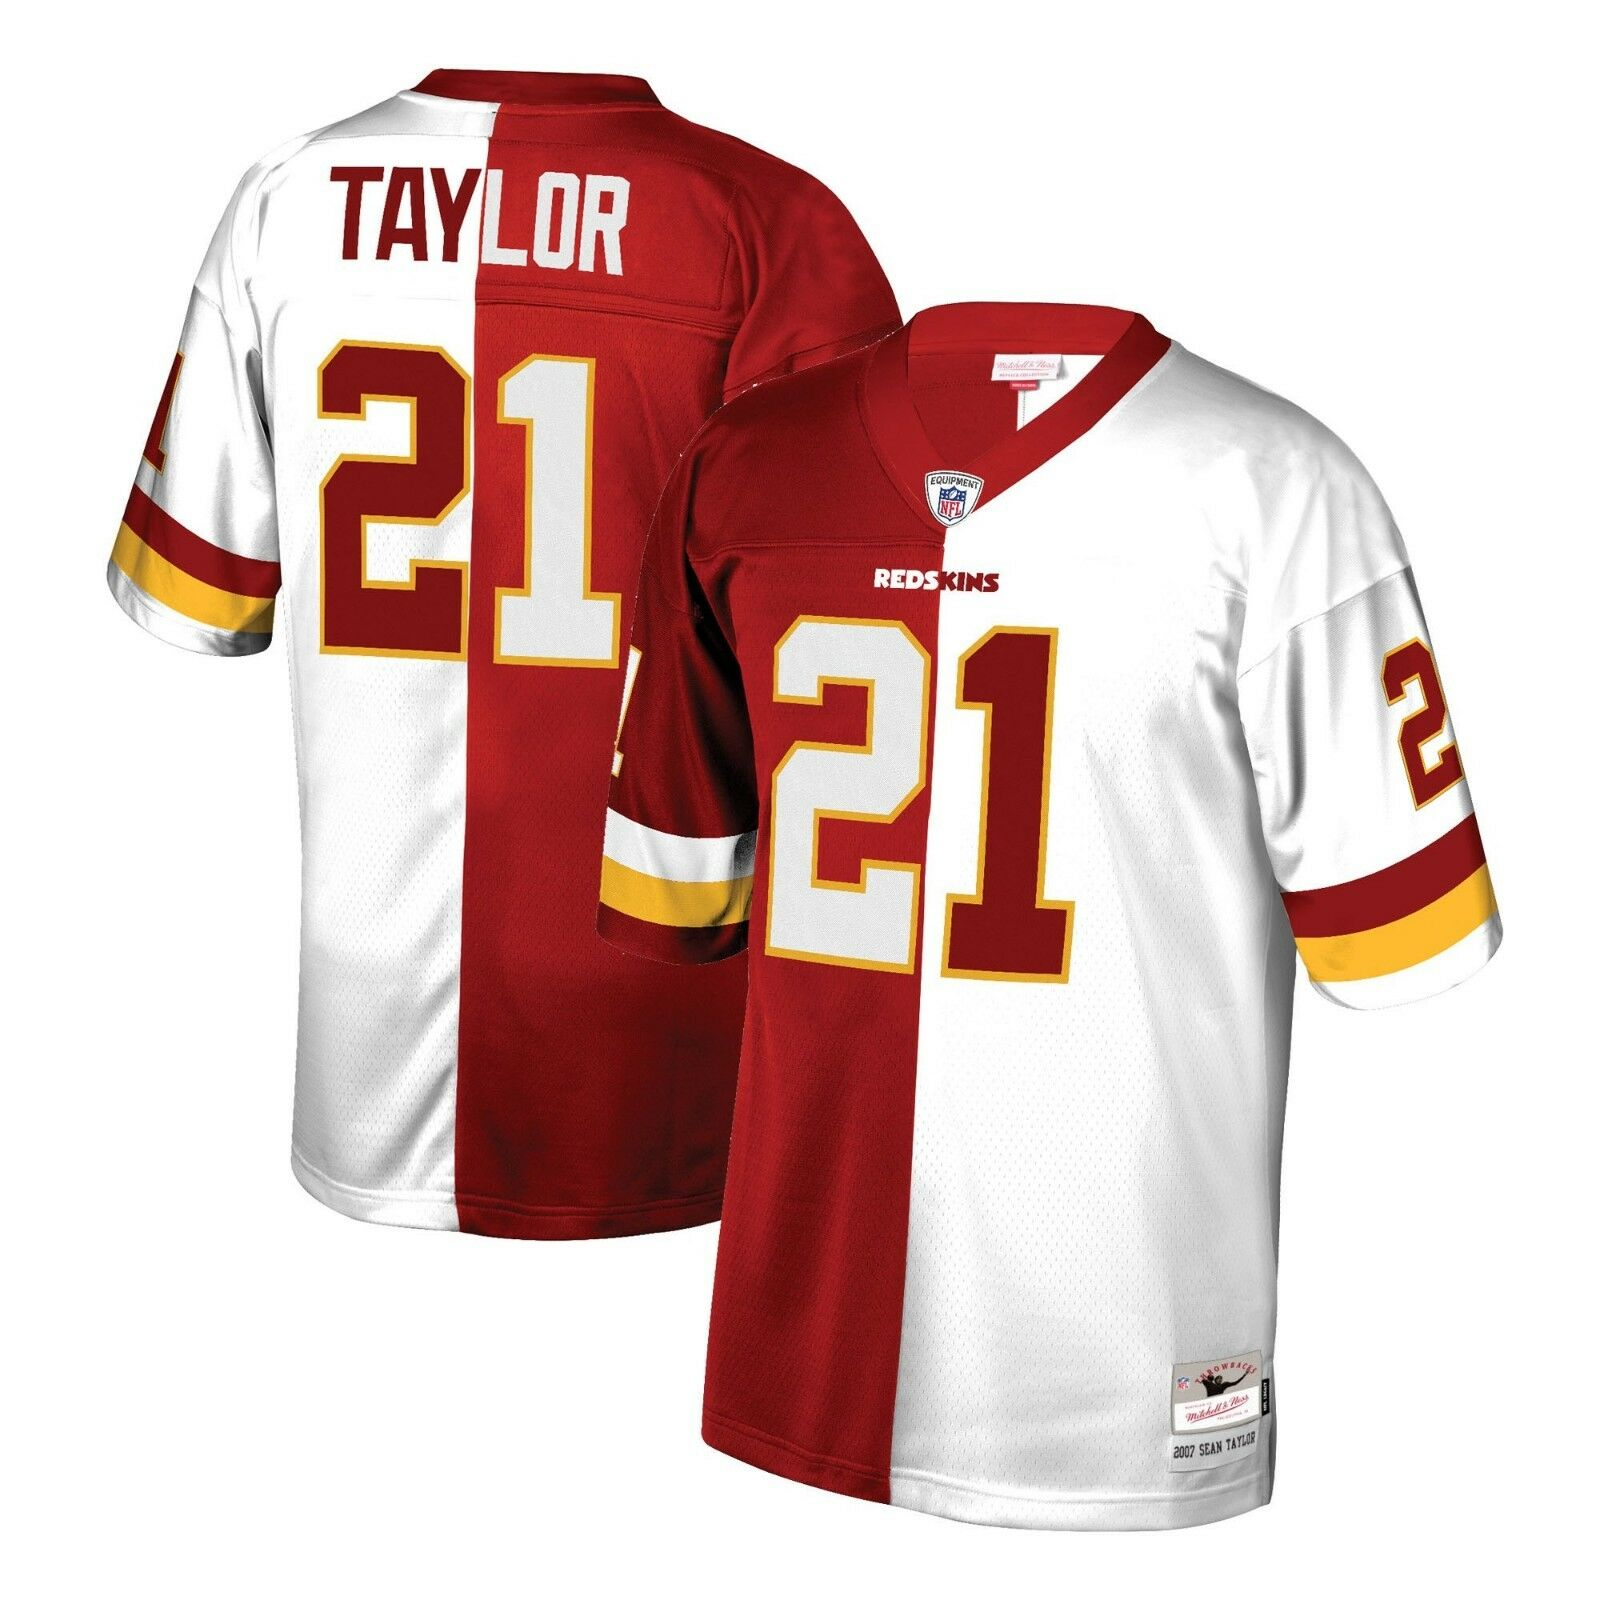 Split Away Taylor About Sean Home Ness Mitchell Washington 2007 Legacy Redskins Jersey Details